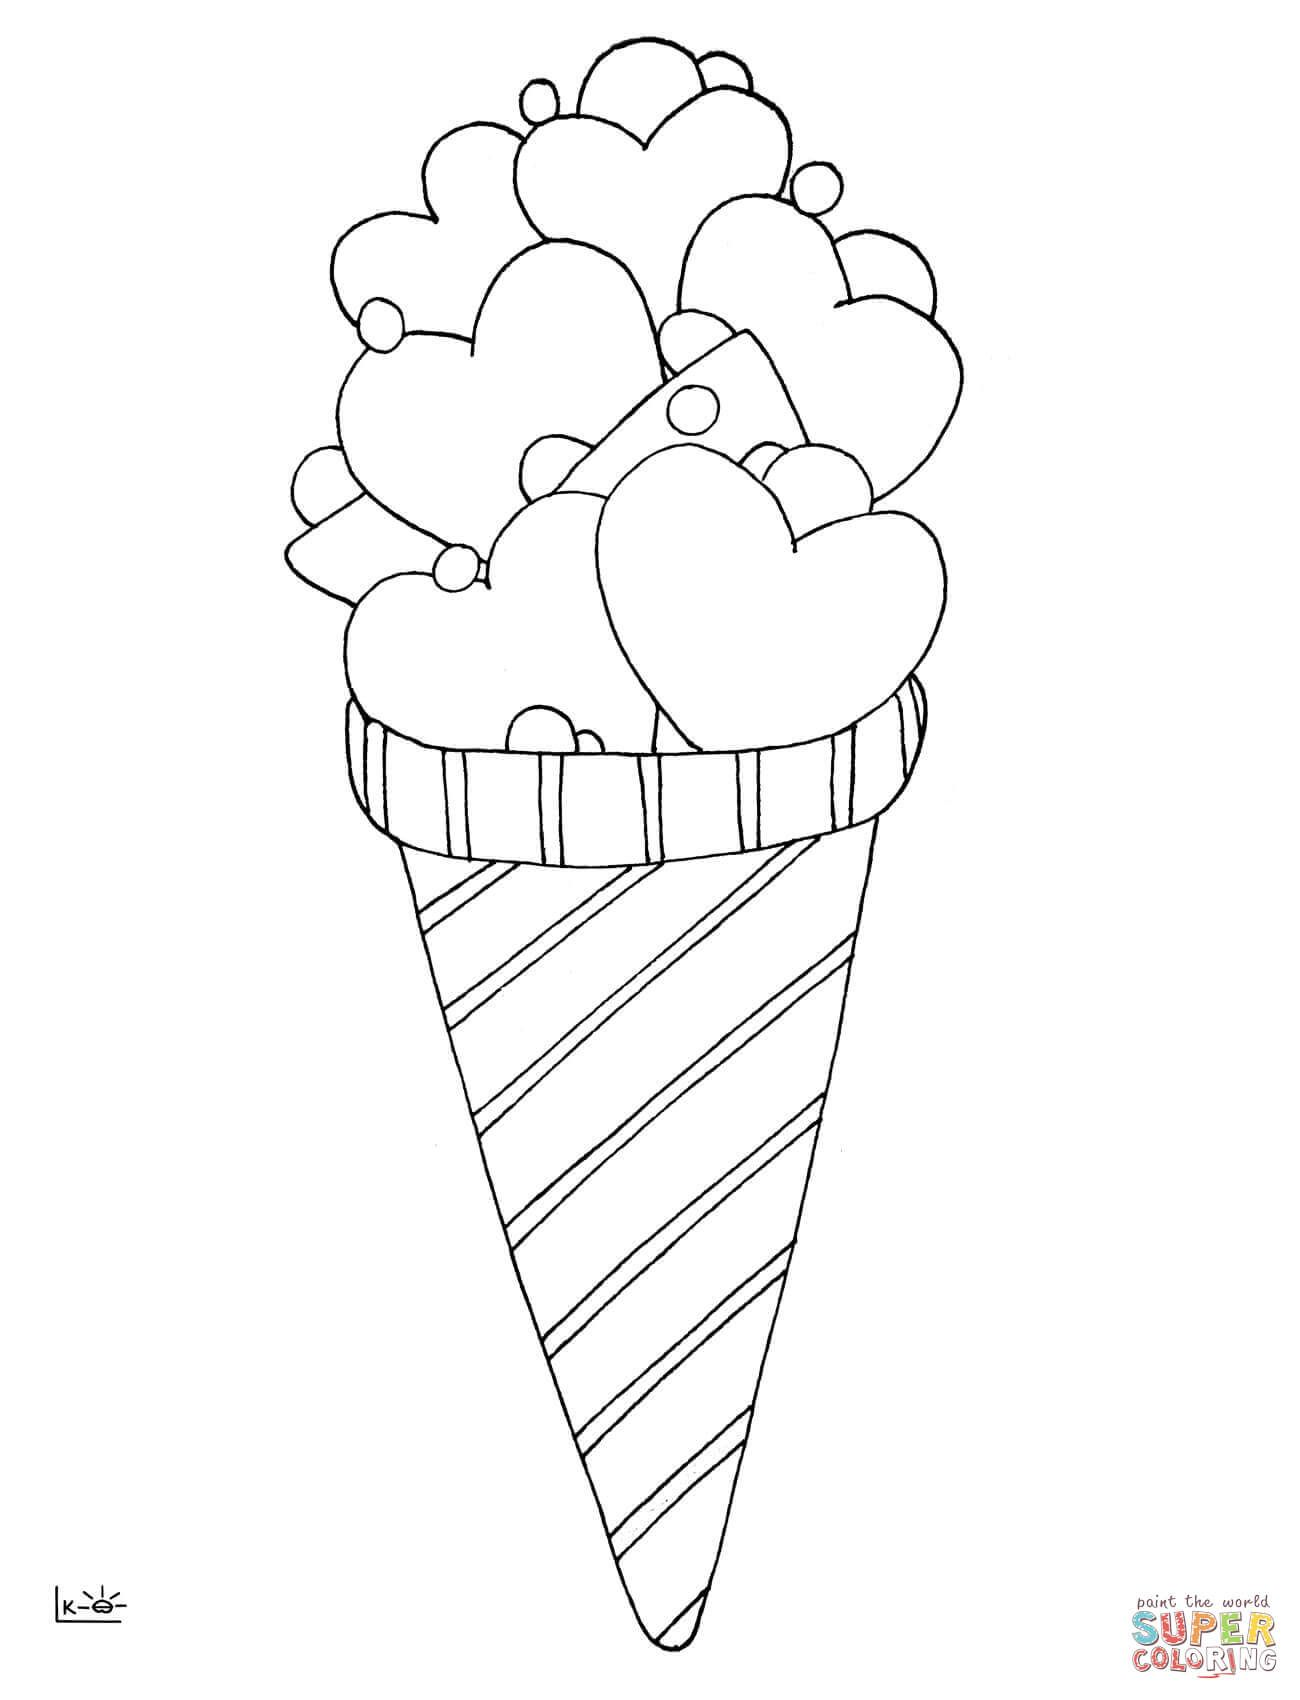 Love Ice Cream Coloring Page Free Printable Coloring Pages Ice Cream Coloring Pages Coloring Pages Free Printable Coloring Pages